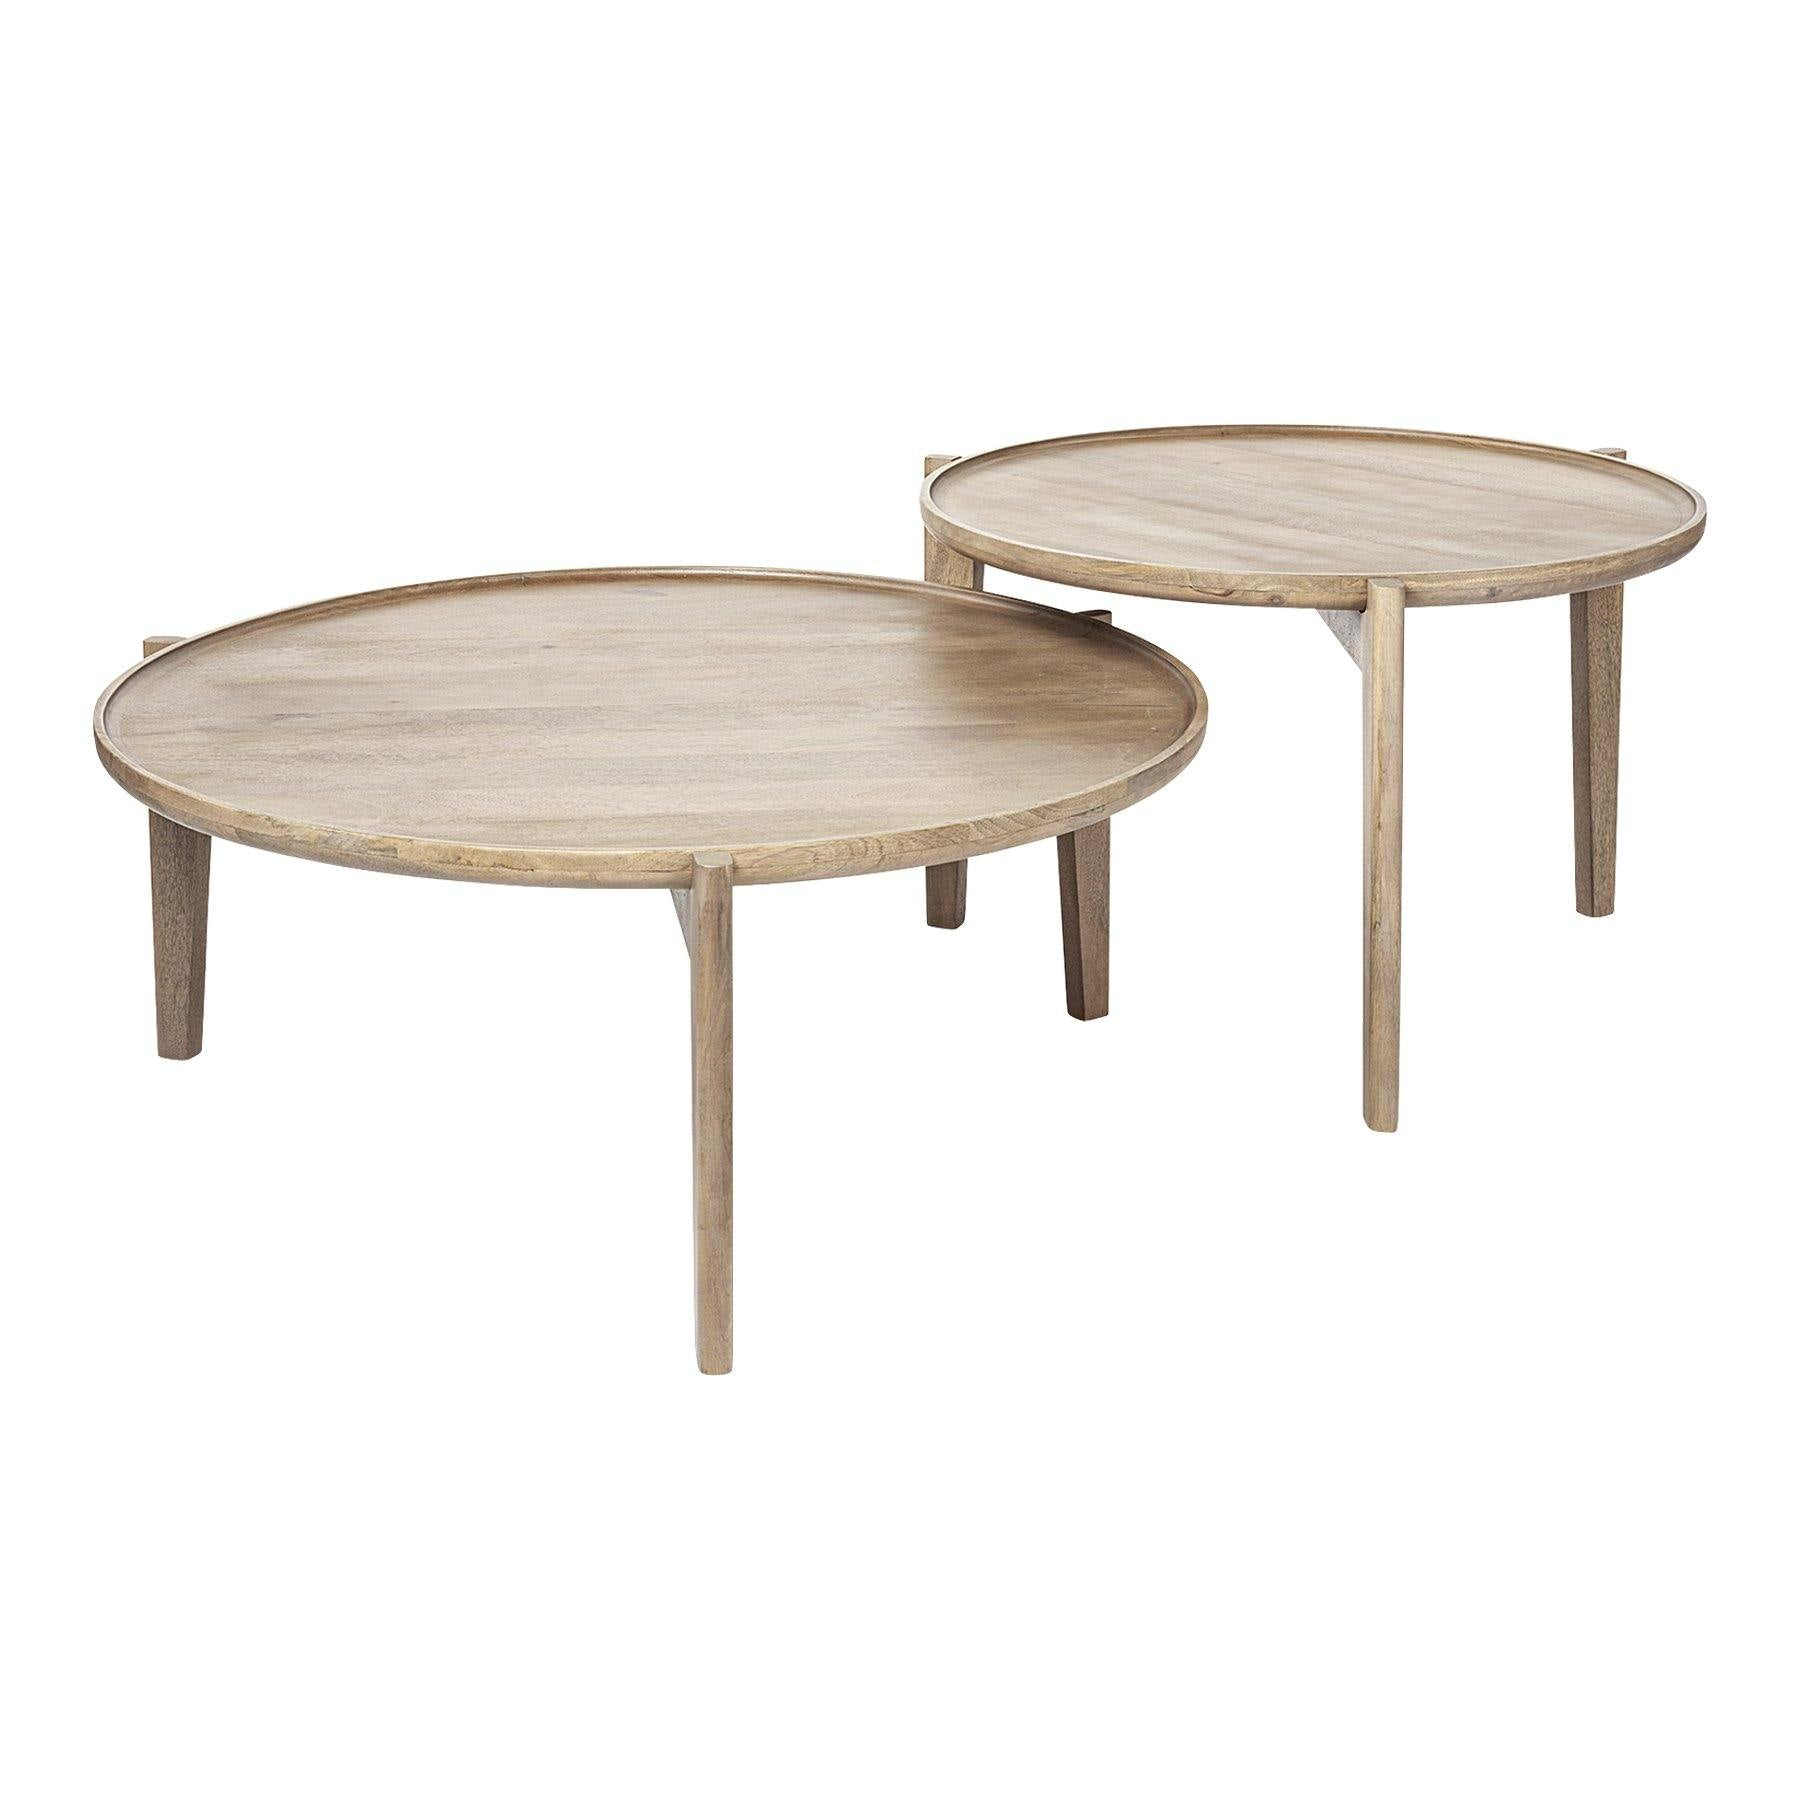 Cleaver Nesting Coffee Tables - Reimagine Designs